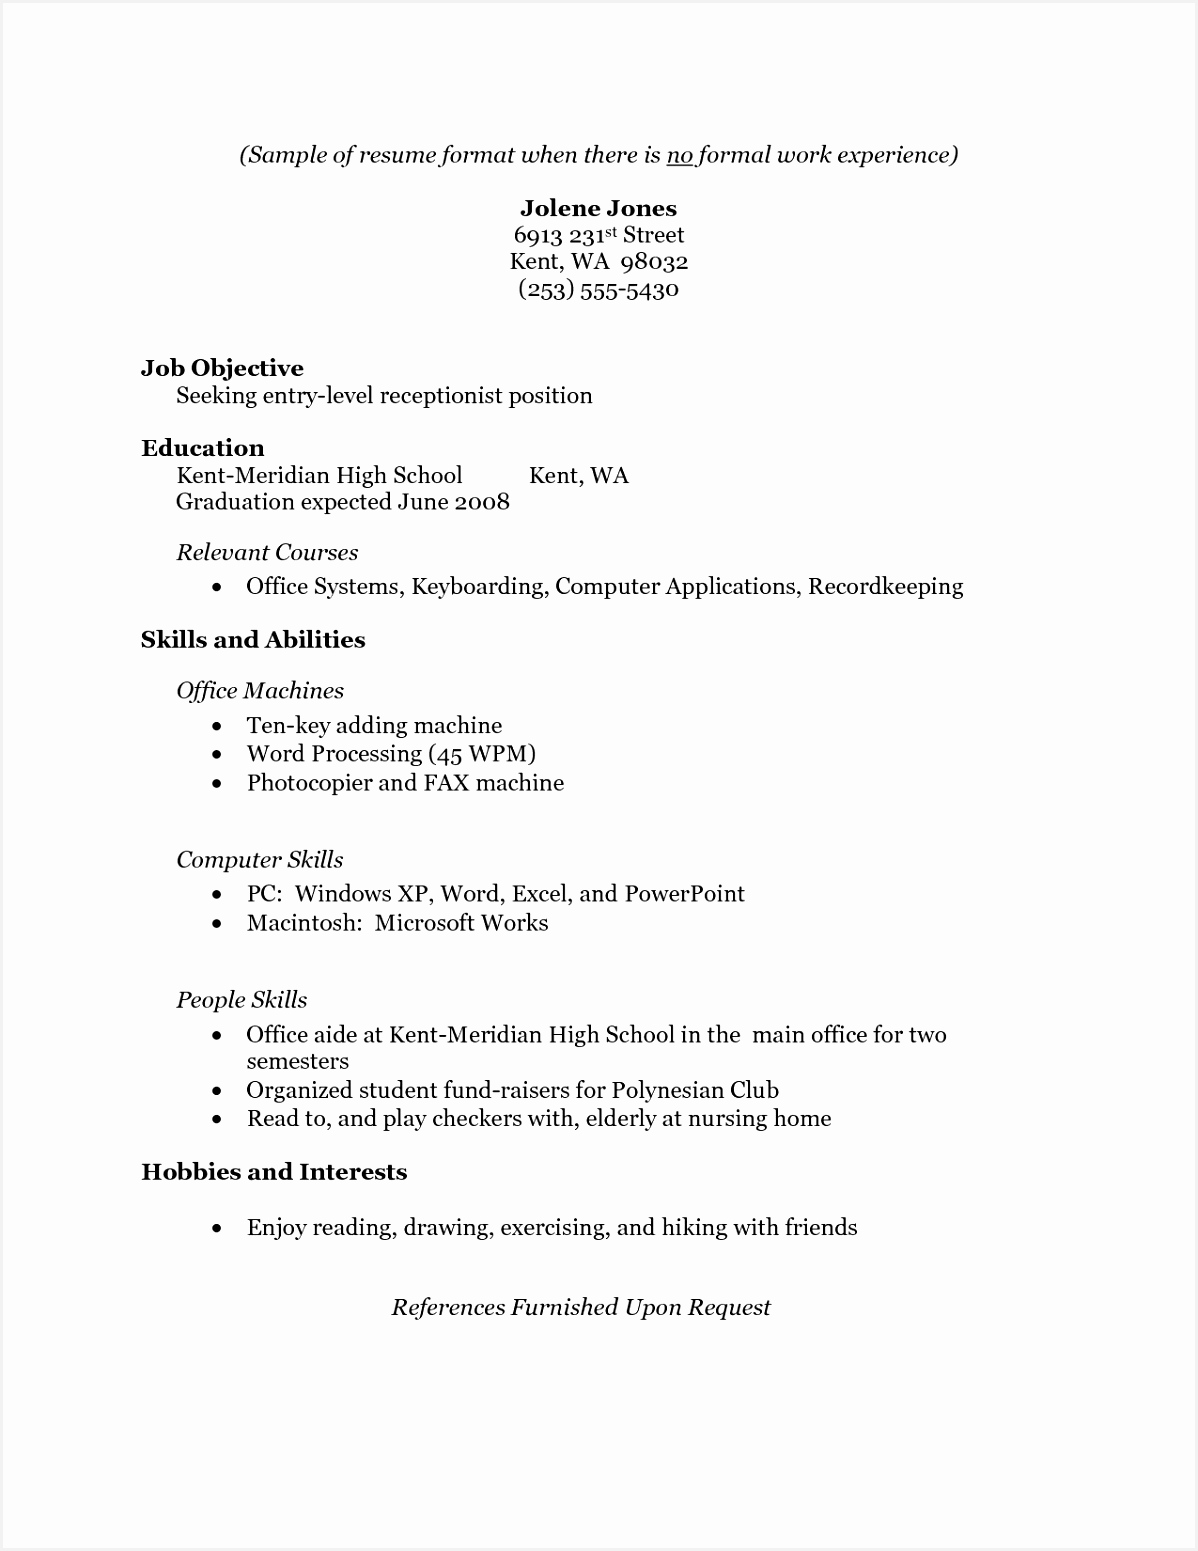 Sample Resume Of A Receptionist Absle New 25 New Writing A Resume for A Job Of 6 Sample Resume Of A Receptionist